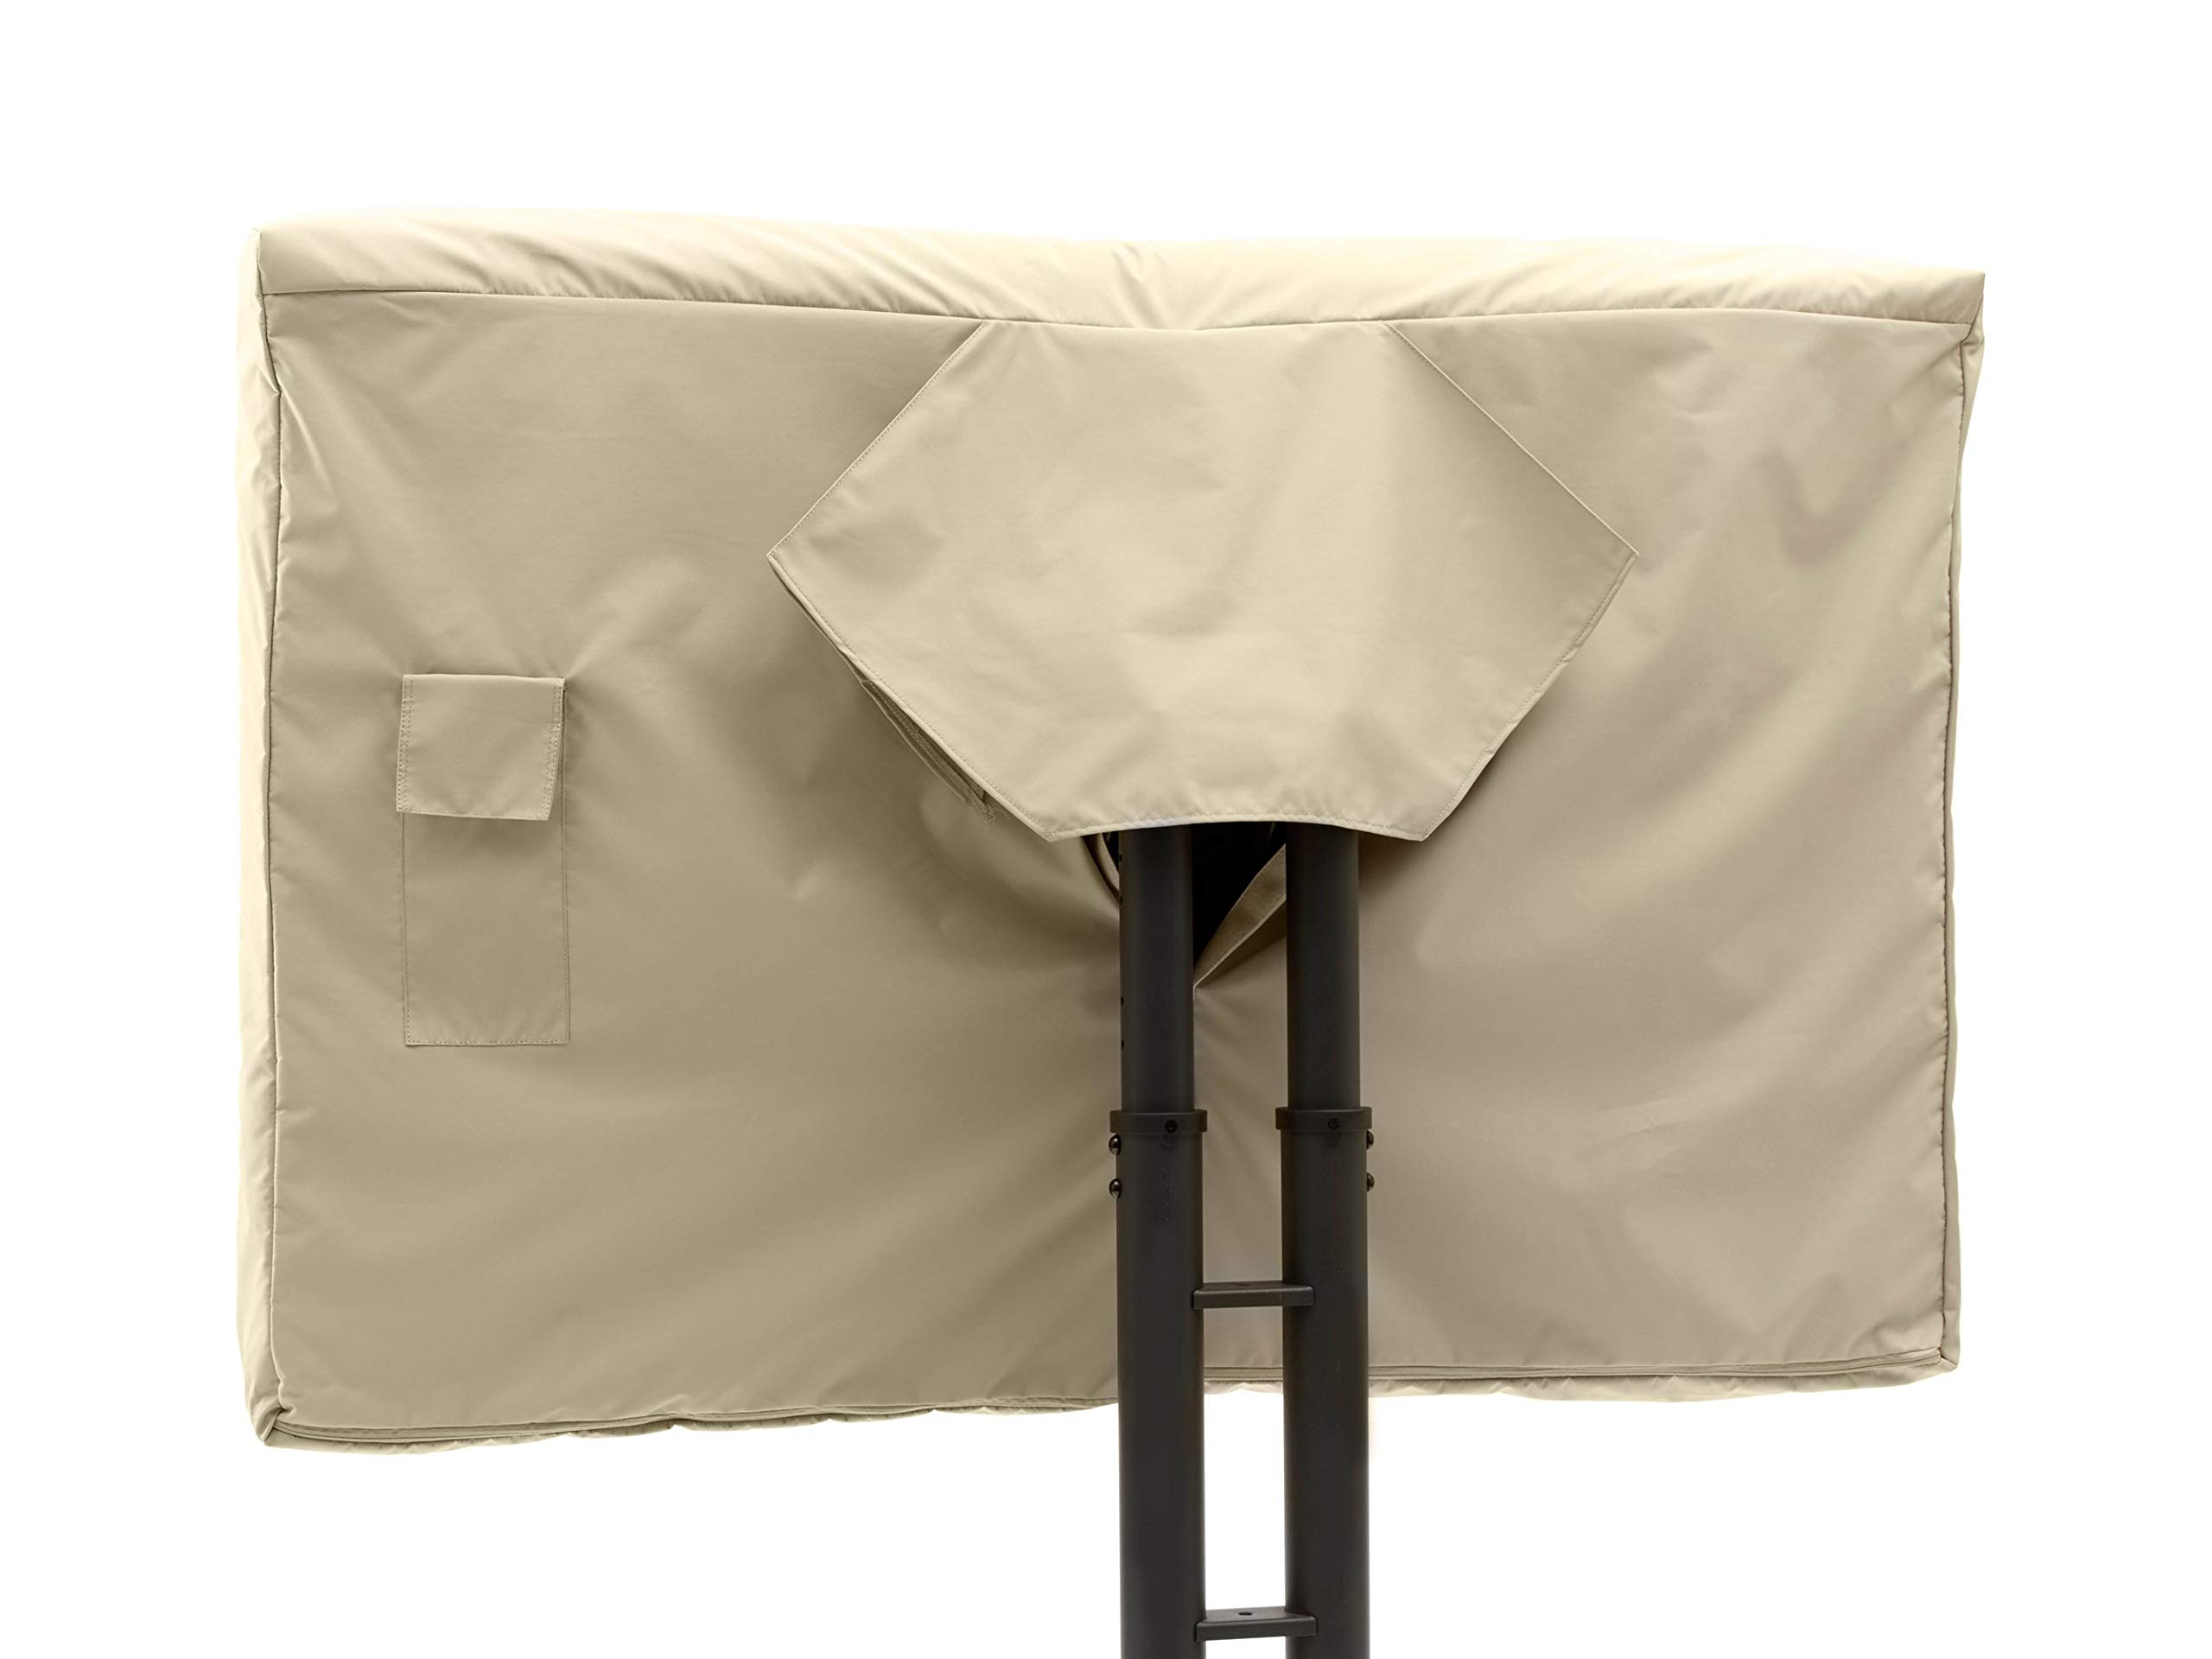 Covermates - Outdoor TV Cover - Fits 65 to 68 Inch TV's - Elite - 300 Denier Stock-Dyed Polyester - Full Coverage - Front Interior Fleece Lining - 3 Year Warranty - Water Resistant - Khaki